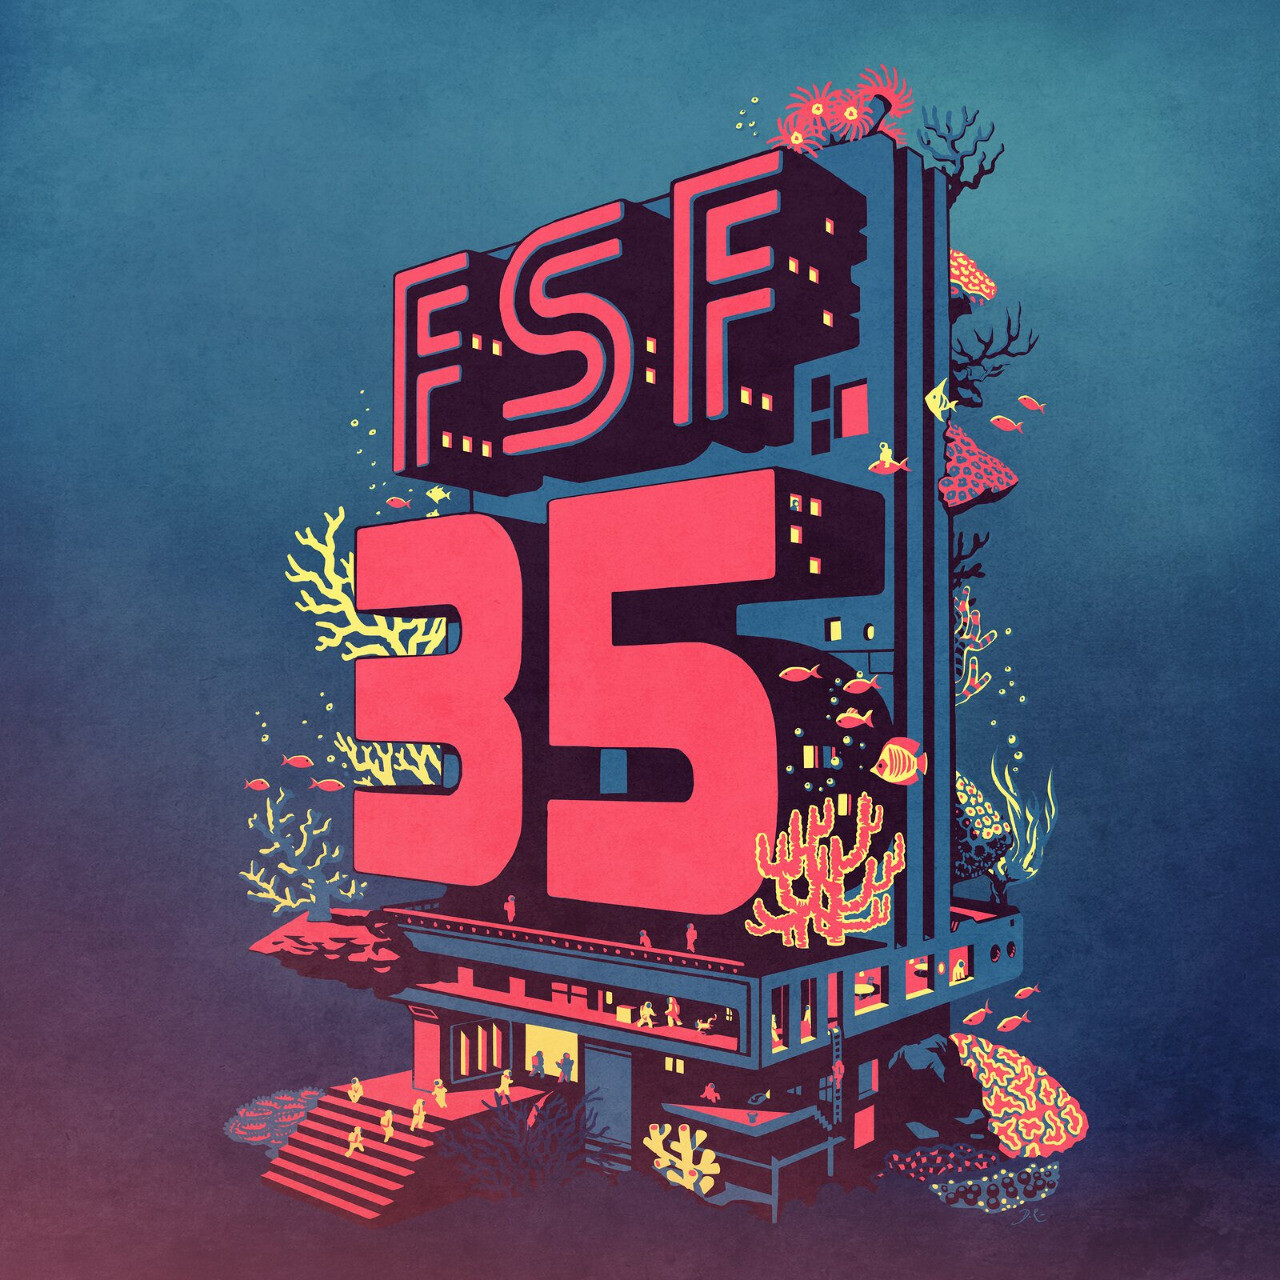 Illustration of a retro futuristic city under the sea with fishes and corals. A big FSF 35 sign is the central part of the building.